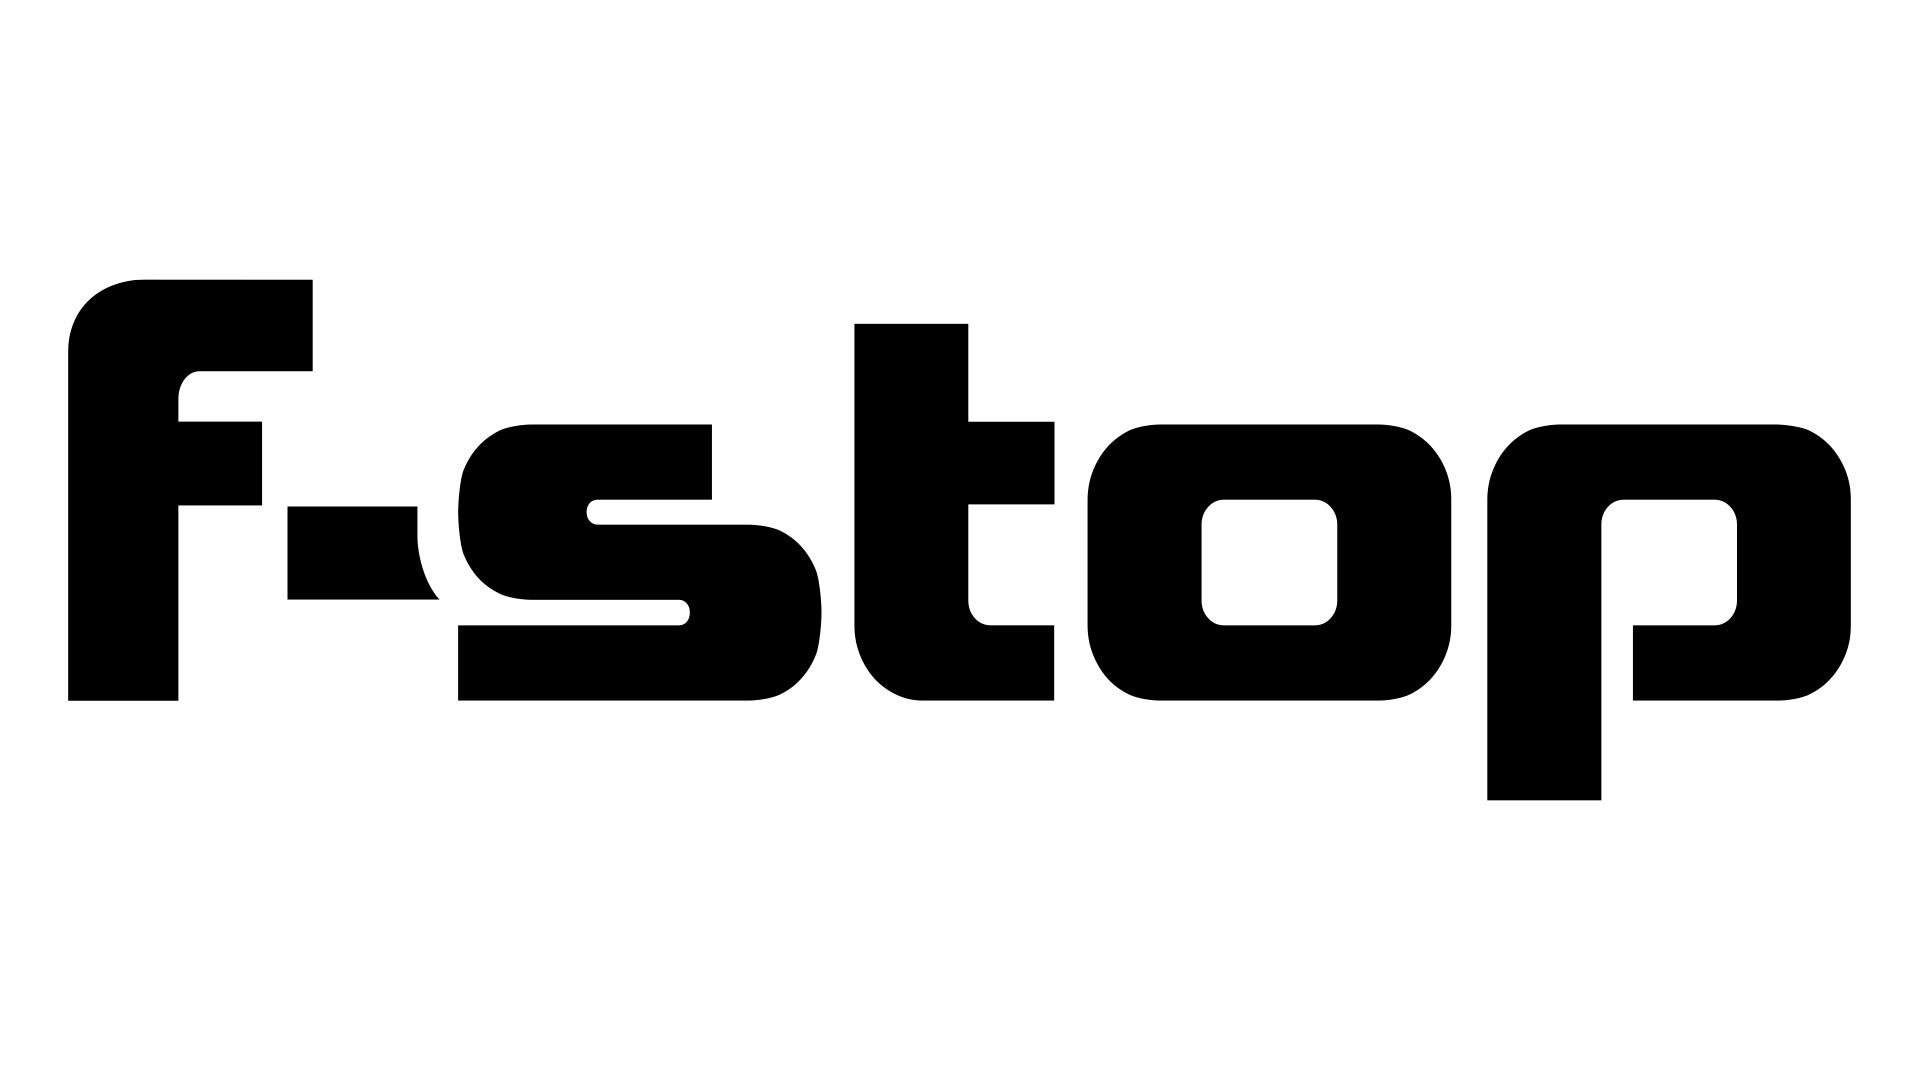 - Christiaan Hart Photography is proudly associated with f-stop gear as an official ambassador.